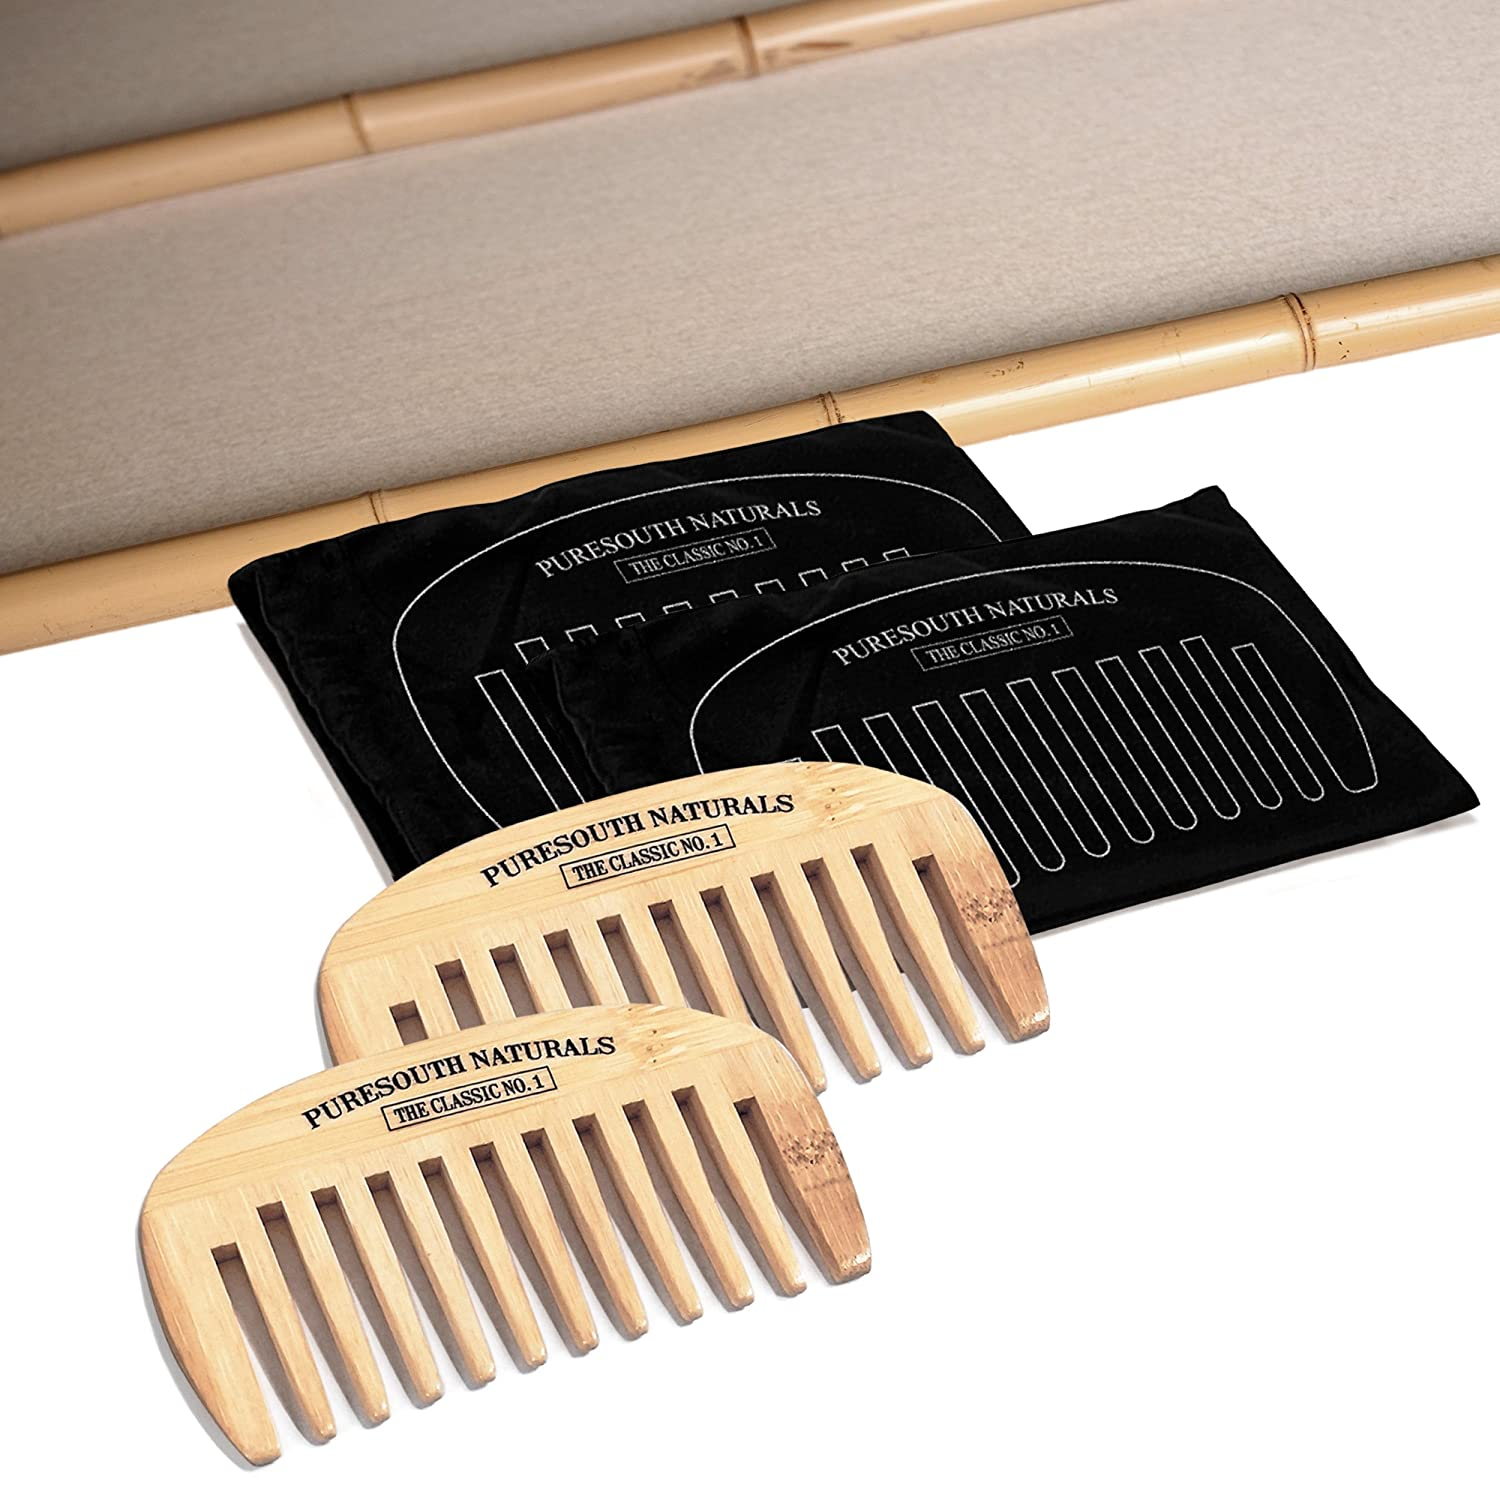 My Best Beard Wide Tooth Bamboo Comb